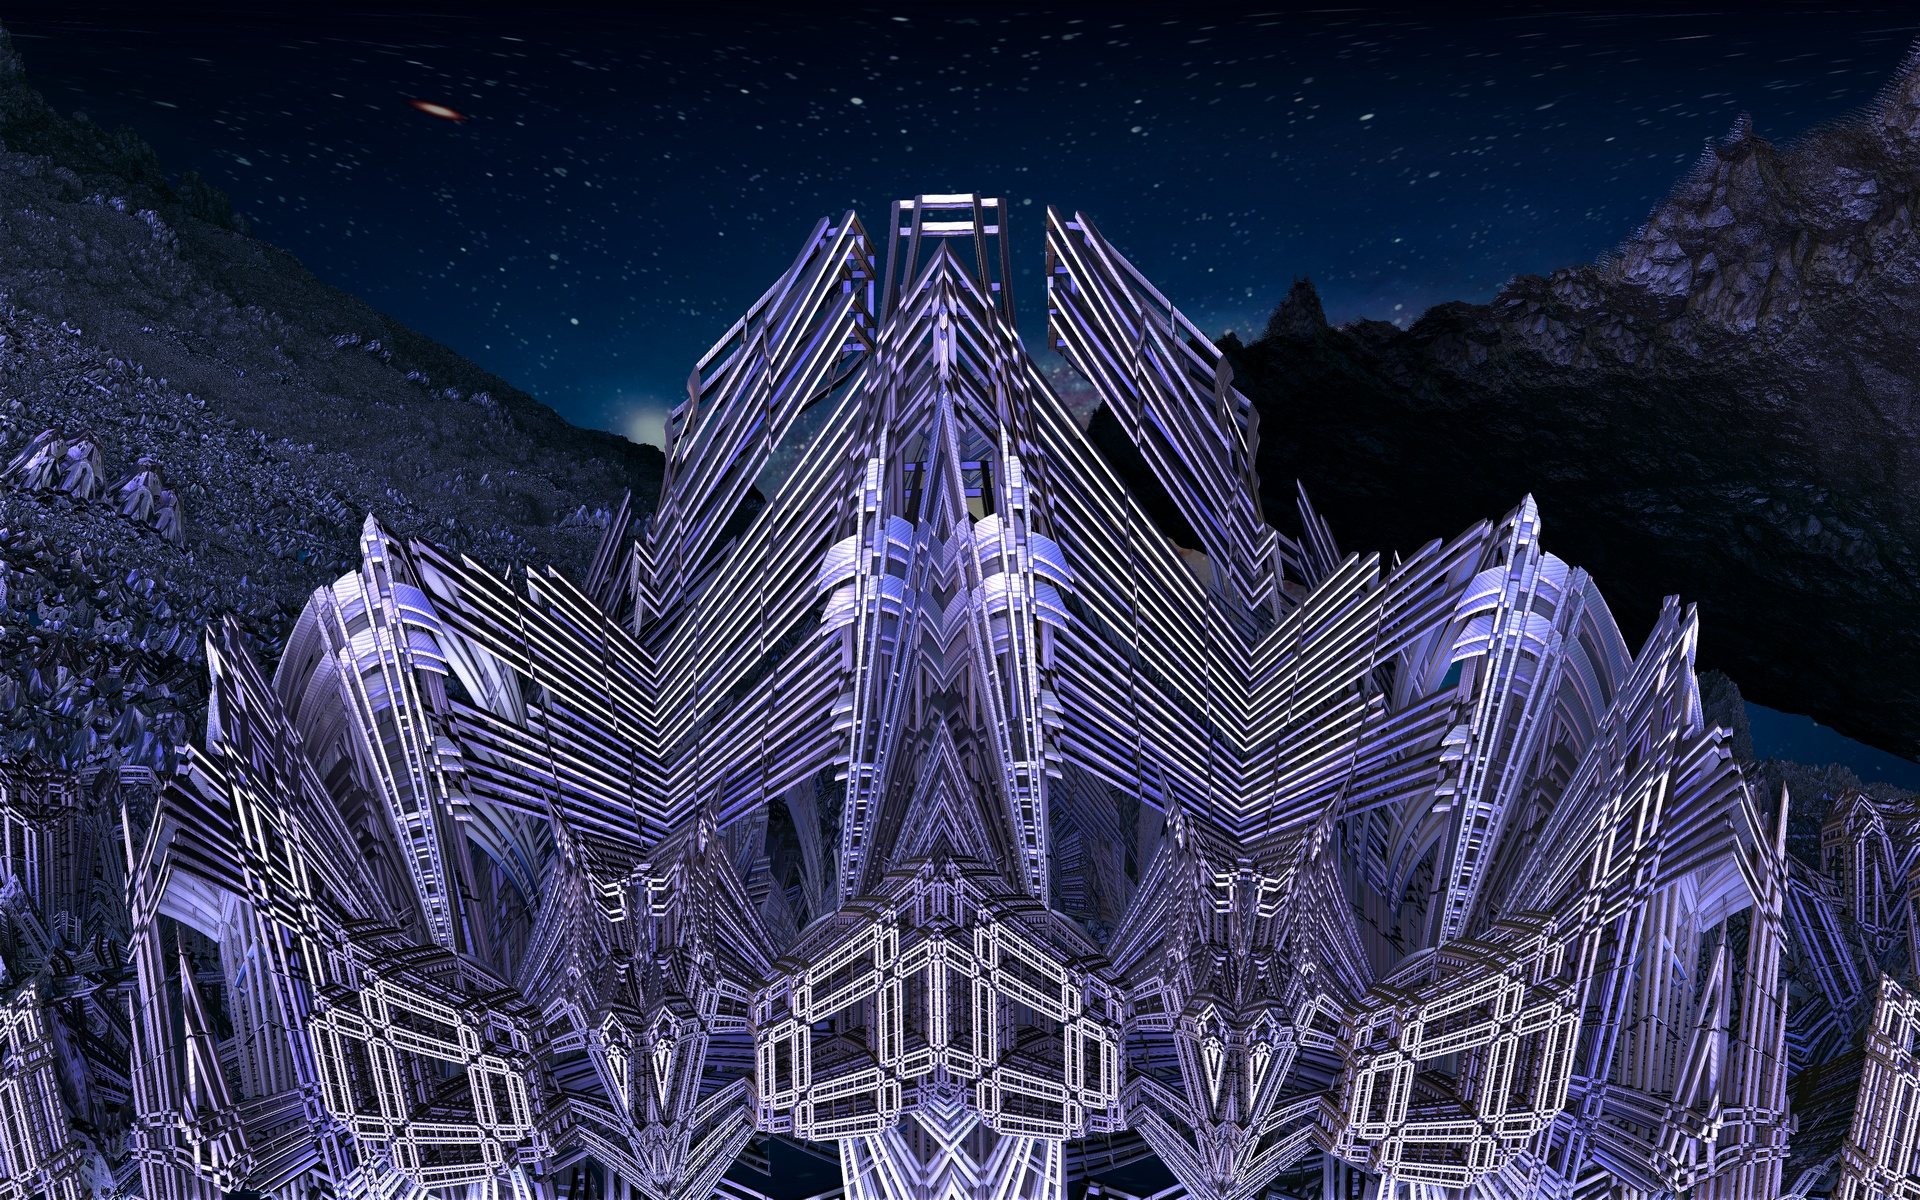 Alien construction site by Topas2012